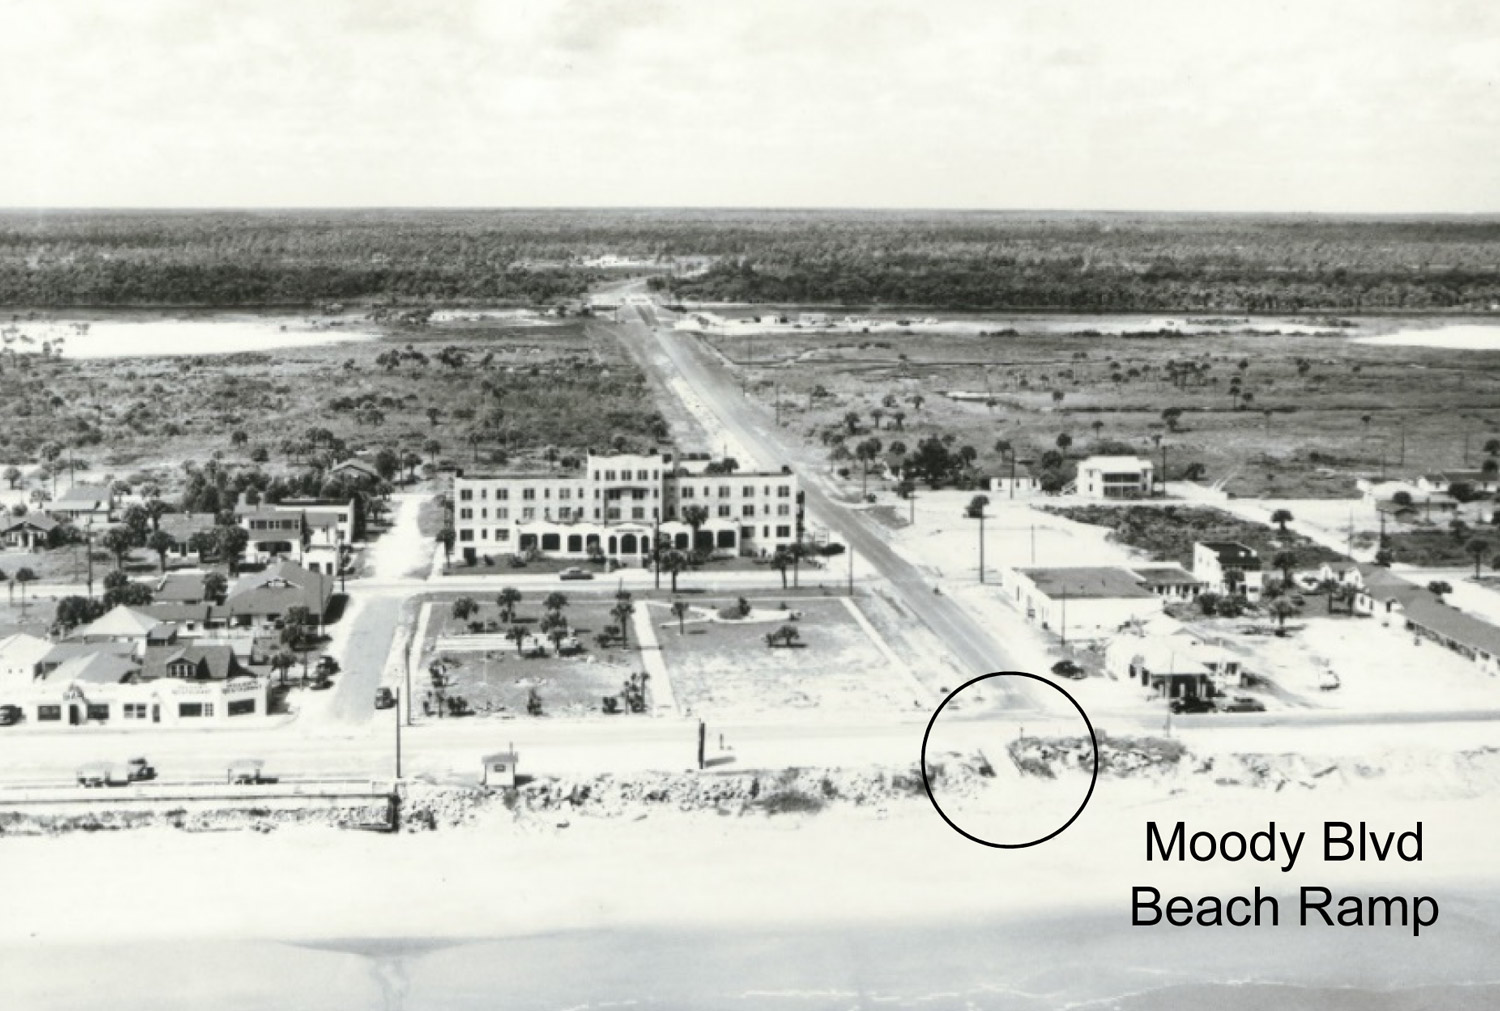 One of the illustrations used during a presentation on the public's customary use of Flagler's beach-front shows the old Flagler Beach Hotel, which opened in 1926, and the Moody Boulevard beach ramp granting public access to the beach. Click on the image for larger view.